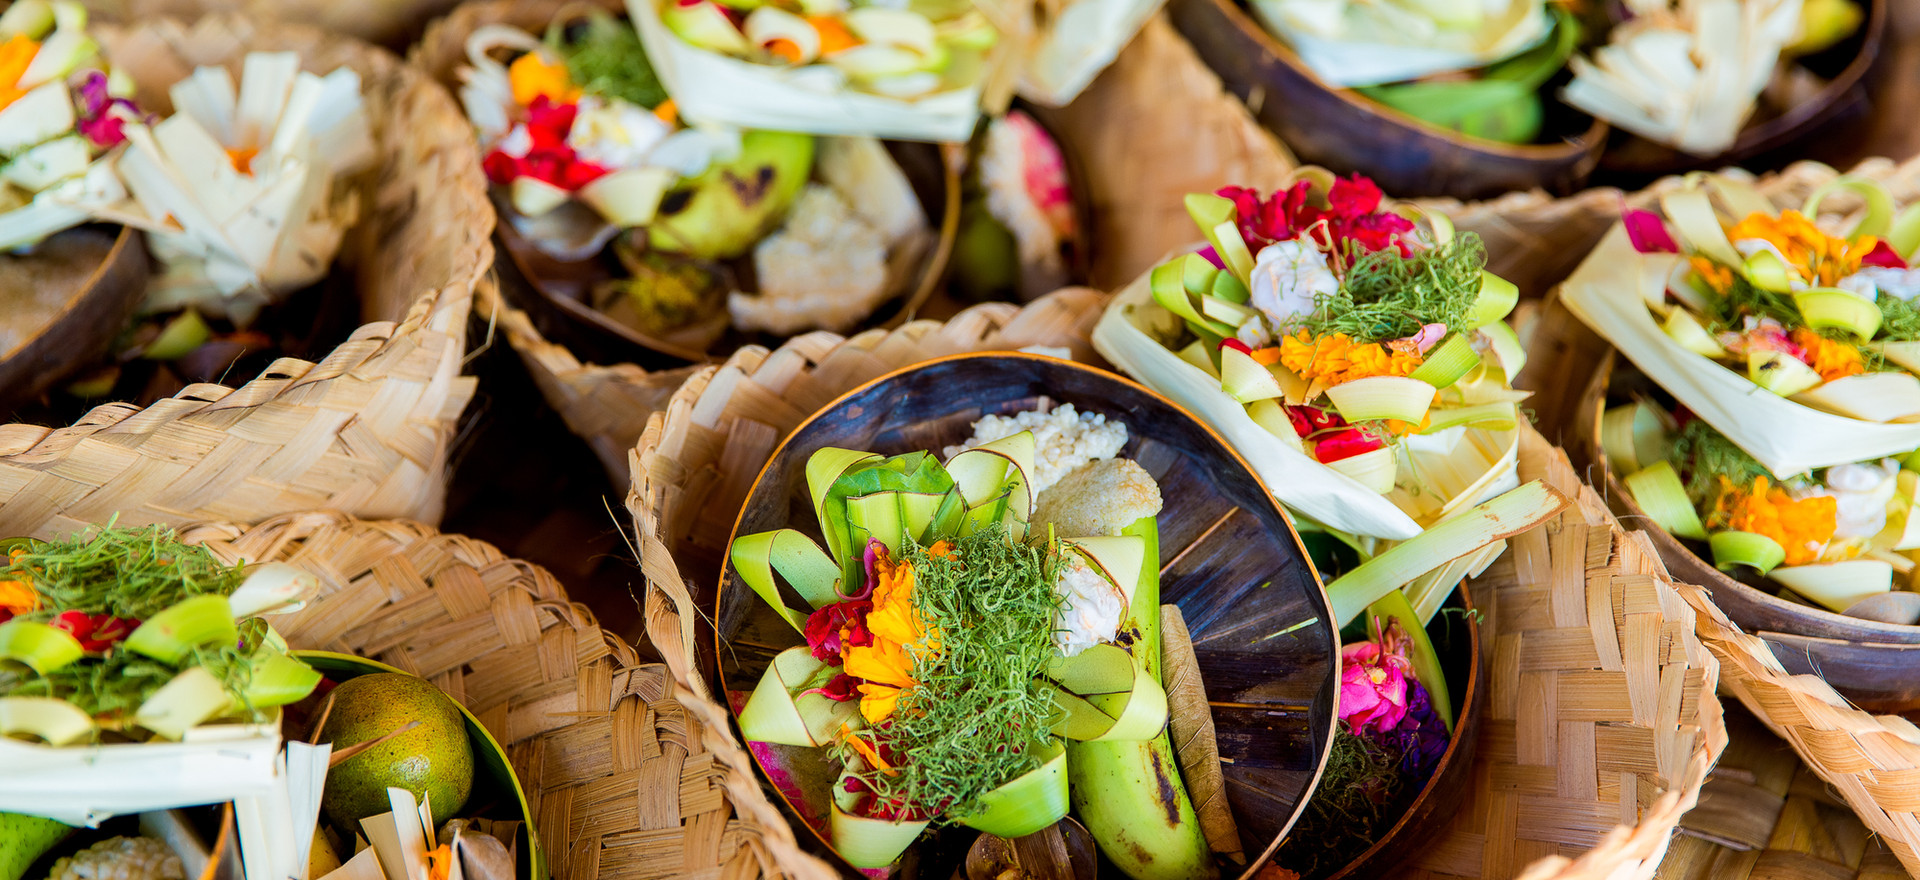 Traditional balinese offerings to gods i